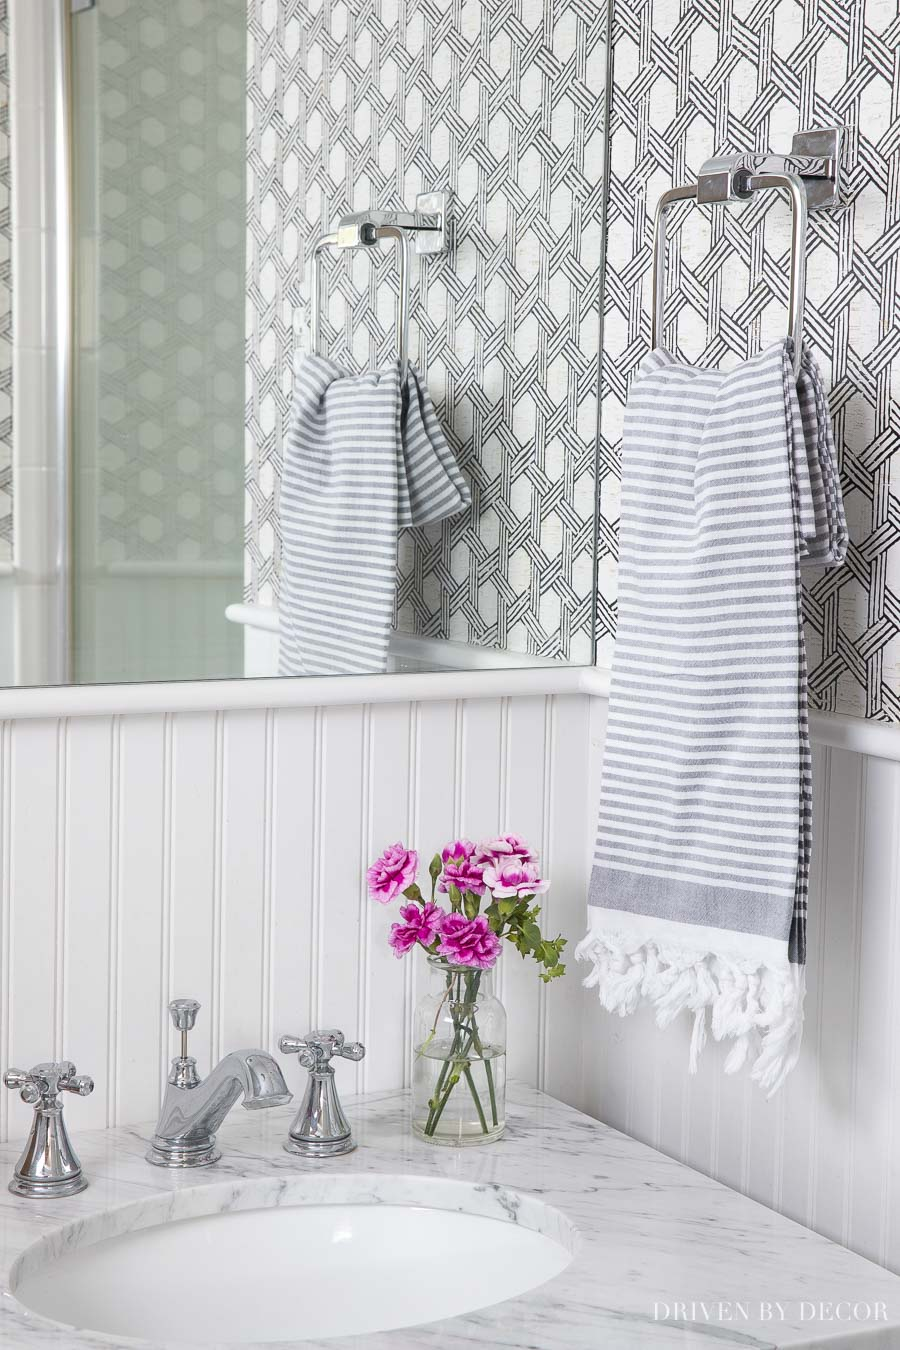 Cute gray striped Turkish towel - the perfect bathroom hand towel!